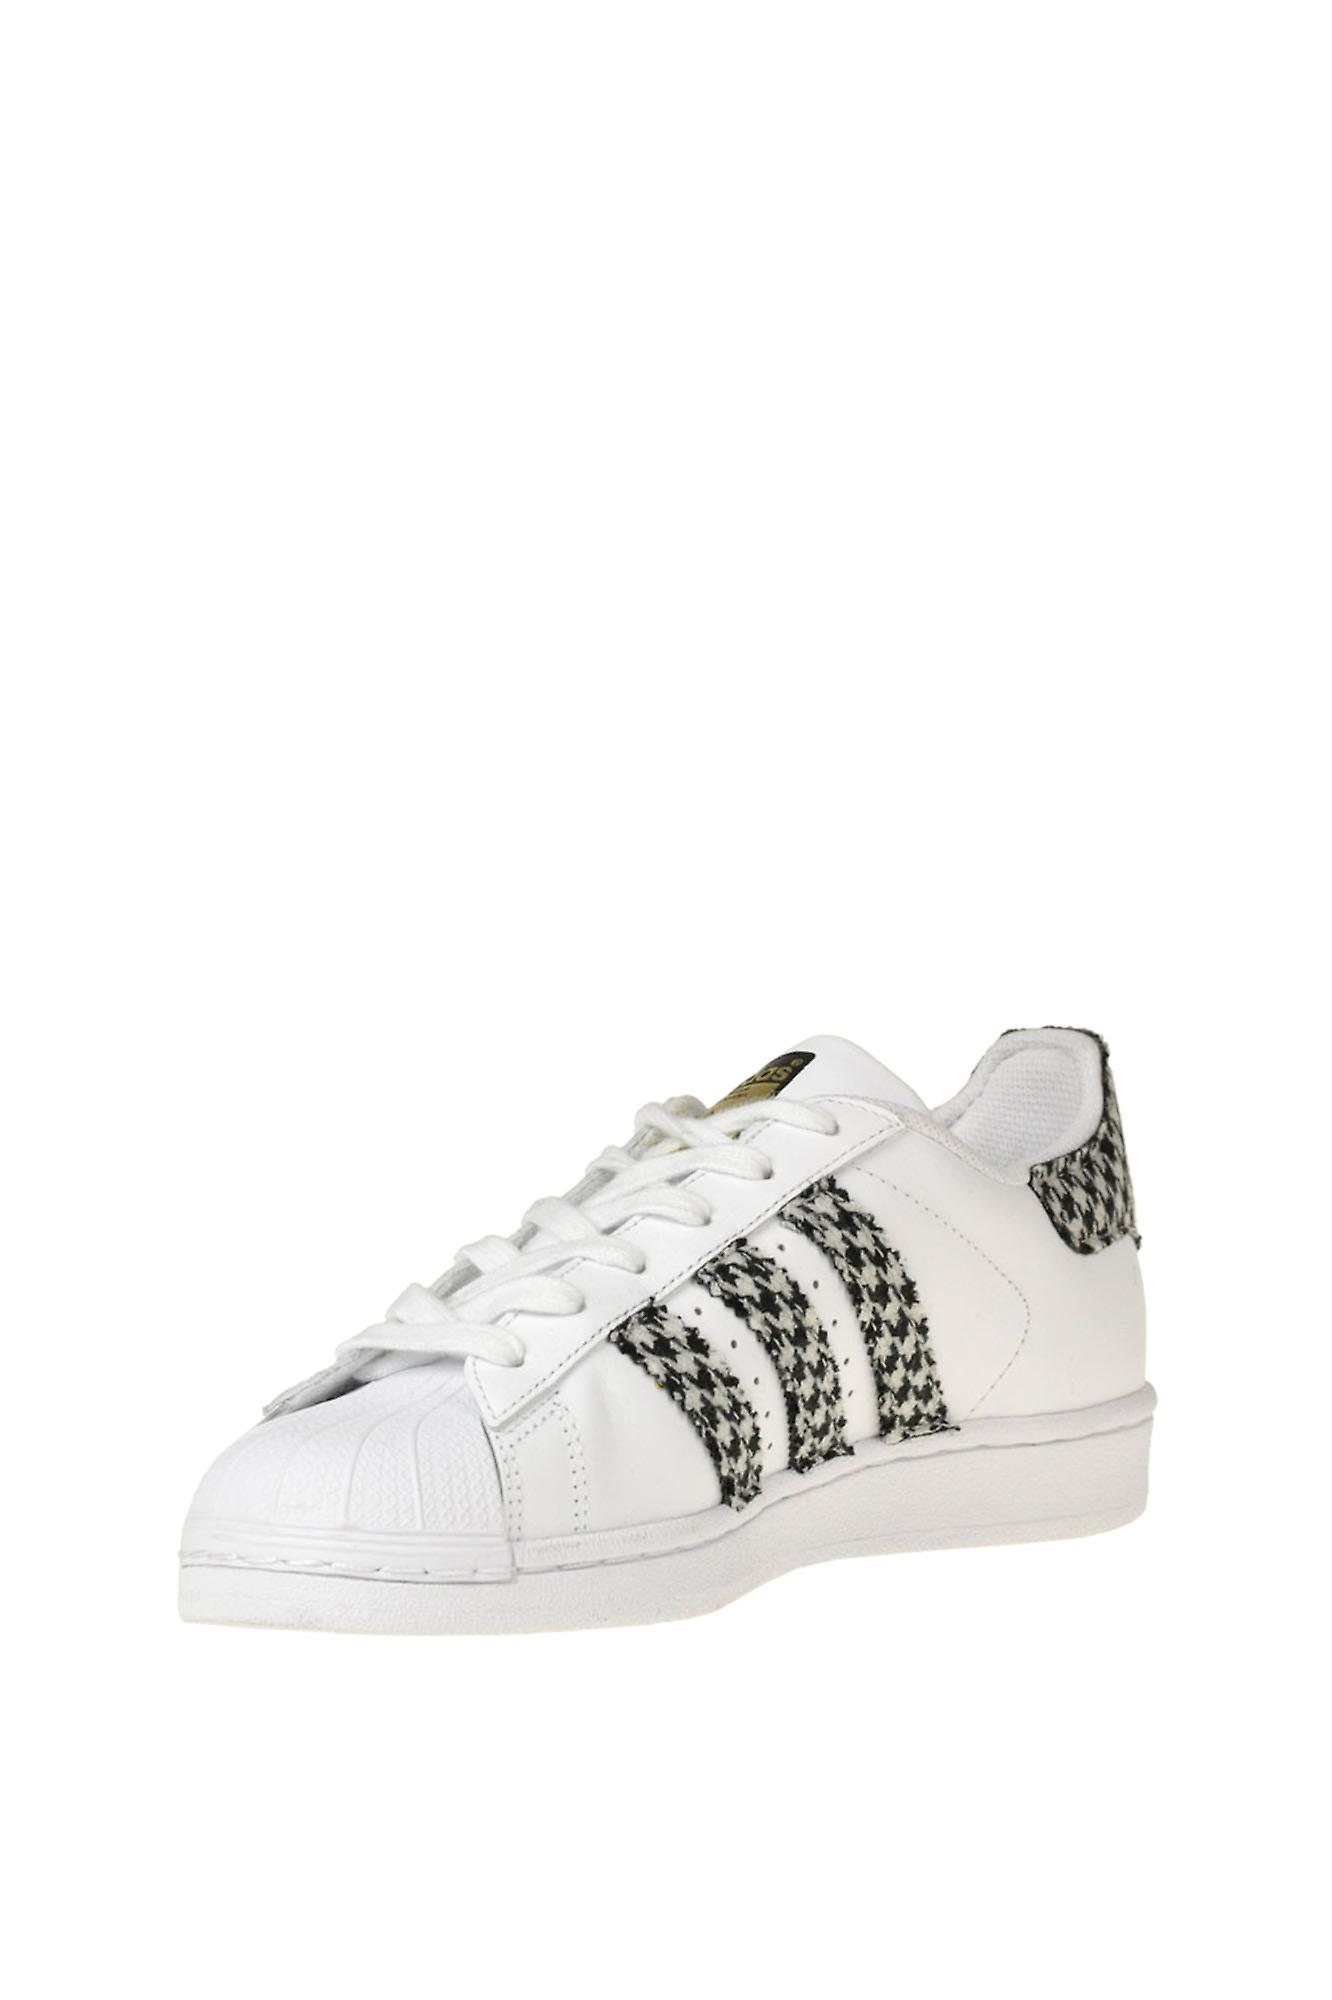 Adidas By Dressed Ezgl142010 Women's White Leather Sneakers - Gratis verzending cY2twu